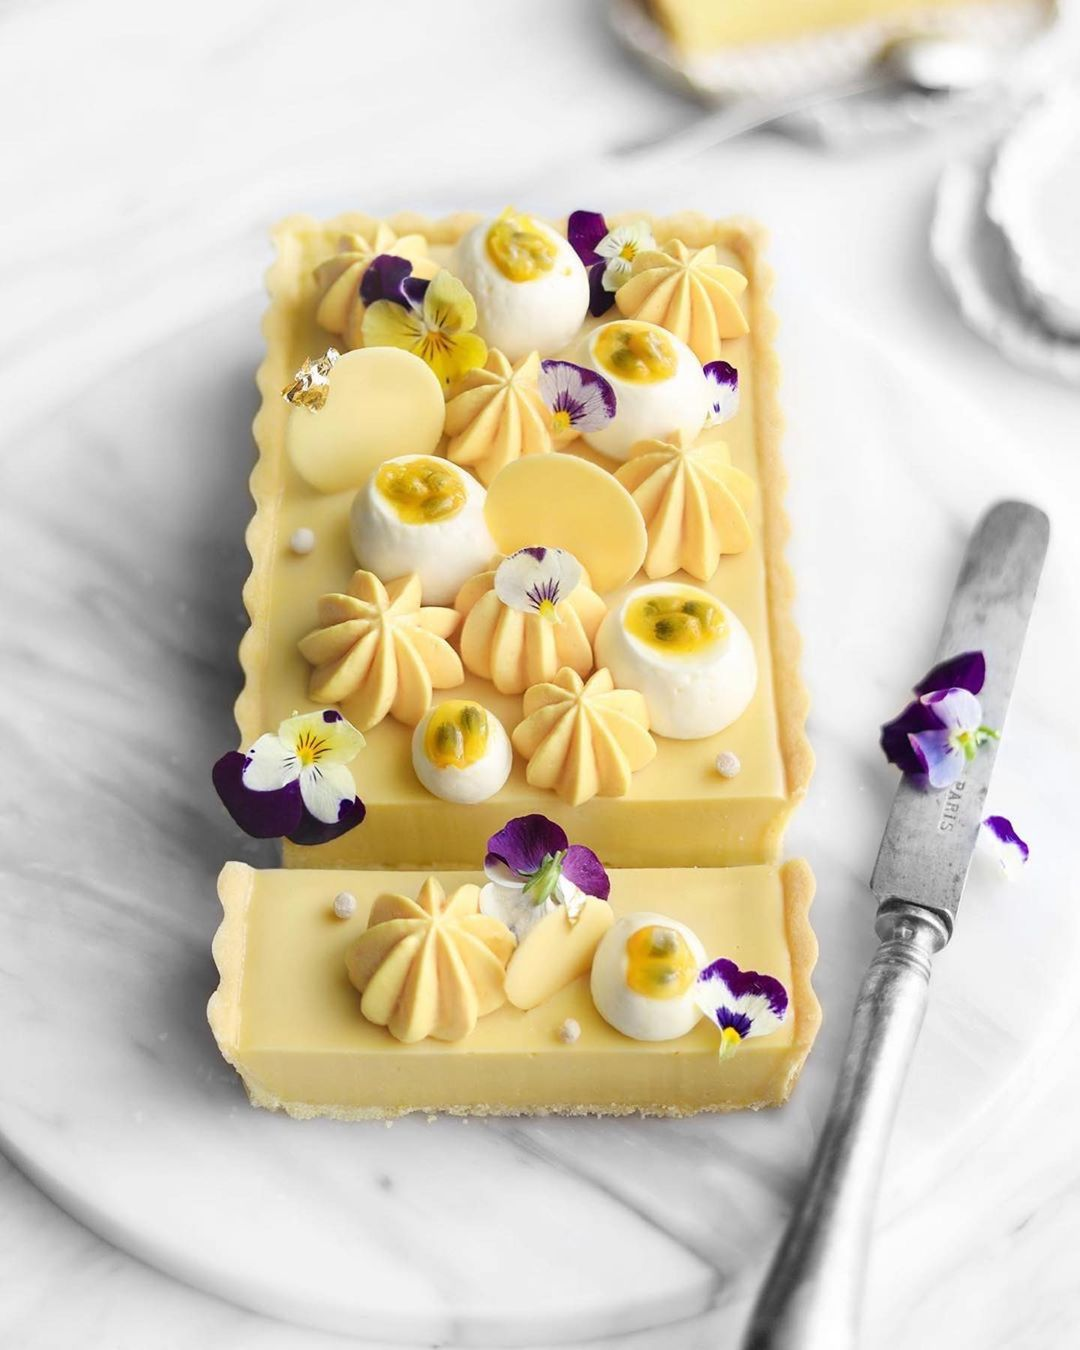 Vegan Passion Fruit Tart With Coconut Chantilly Cream Best Of Vegan